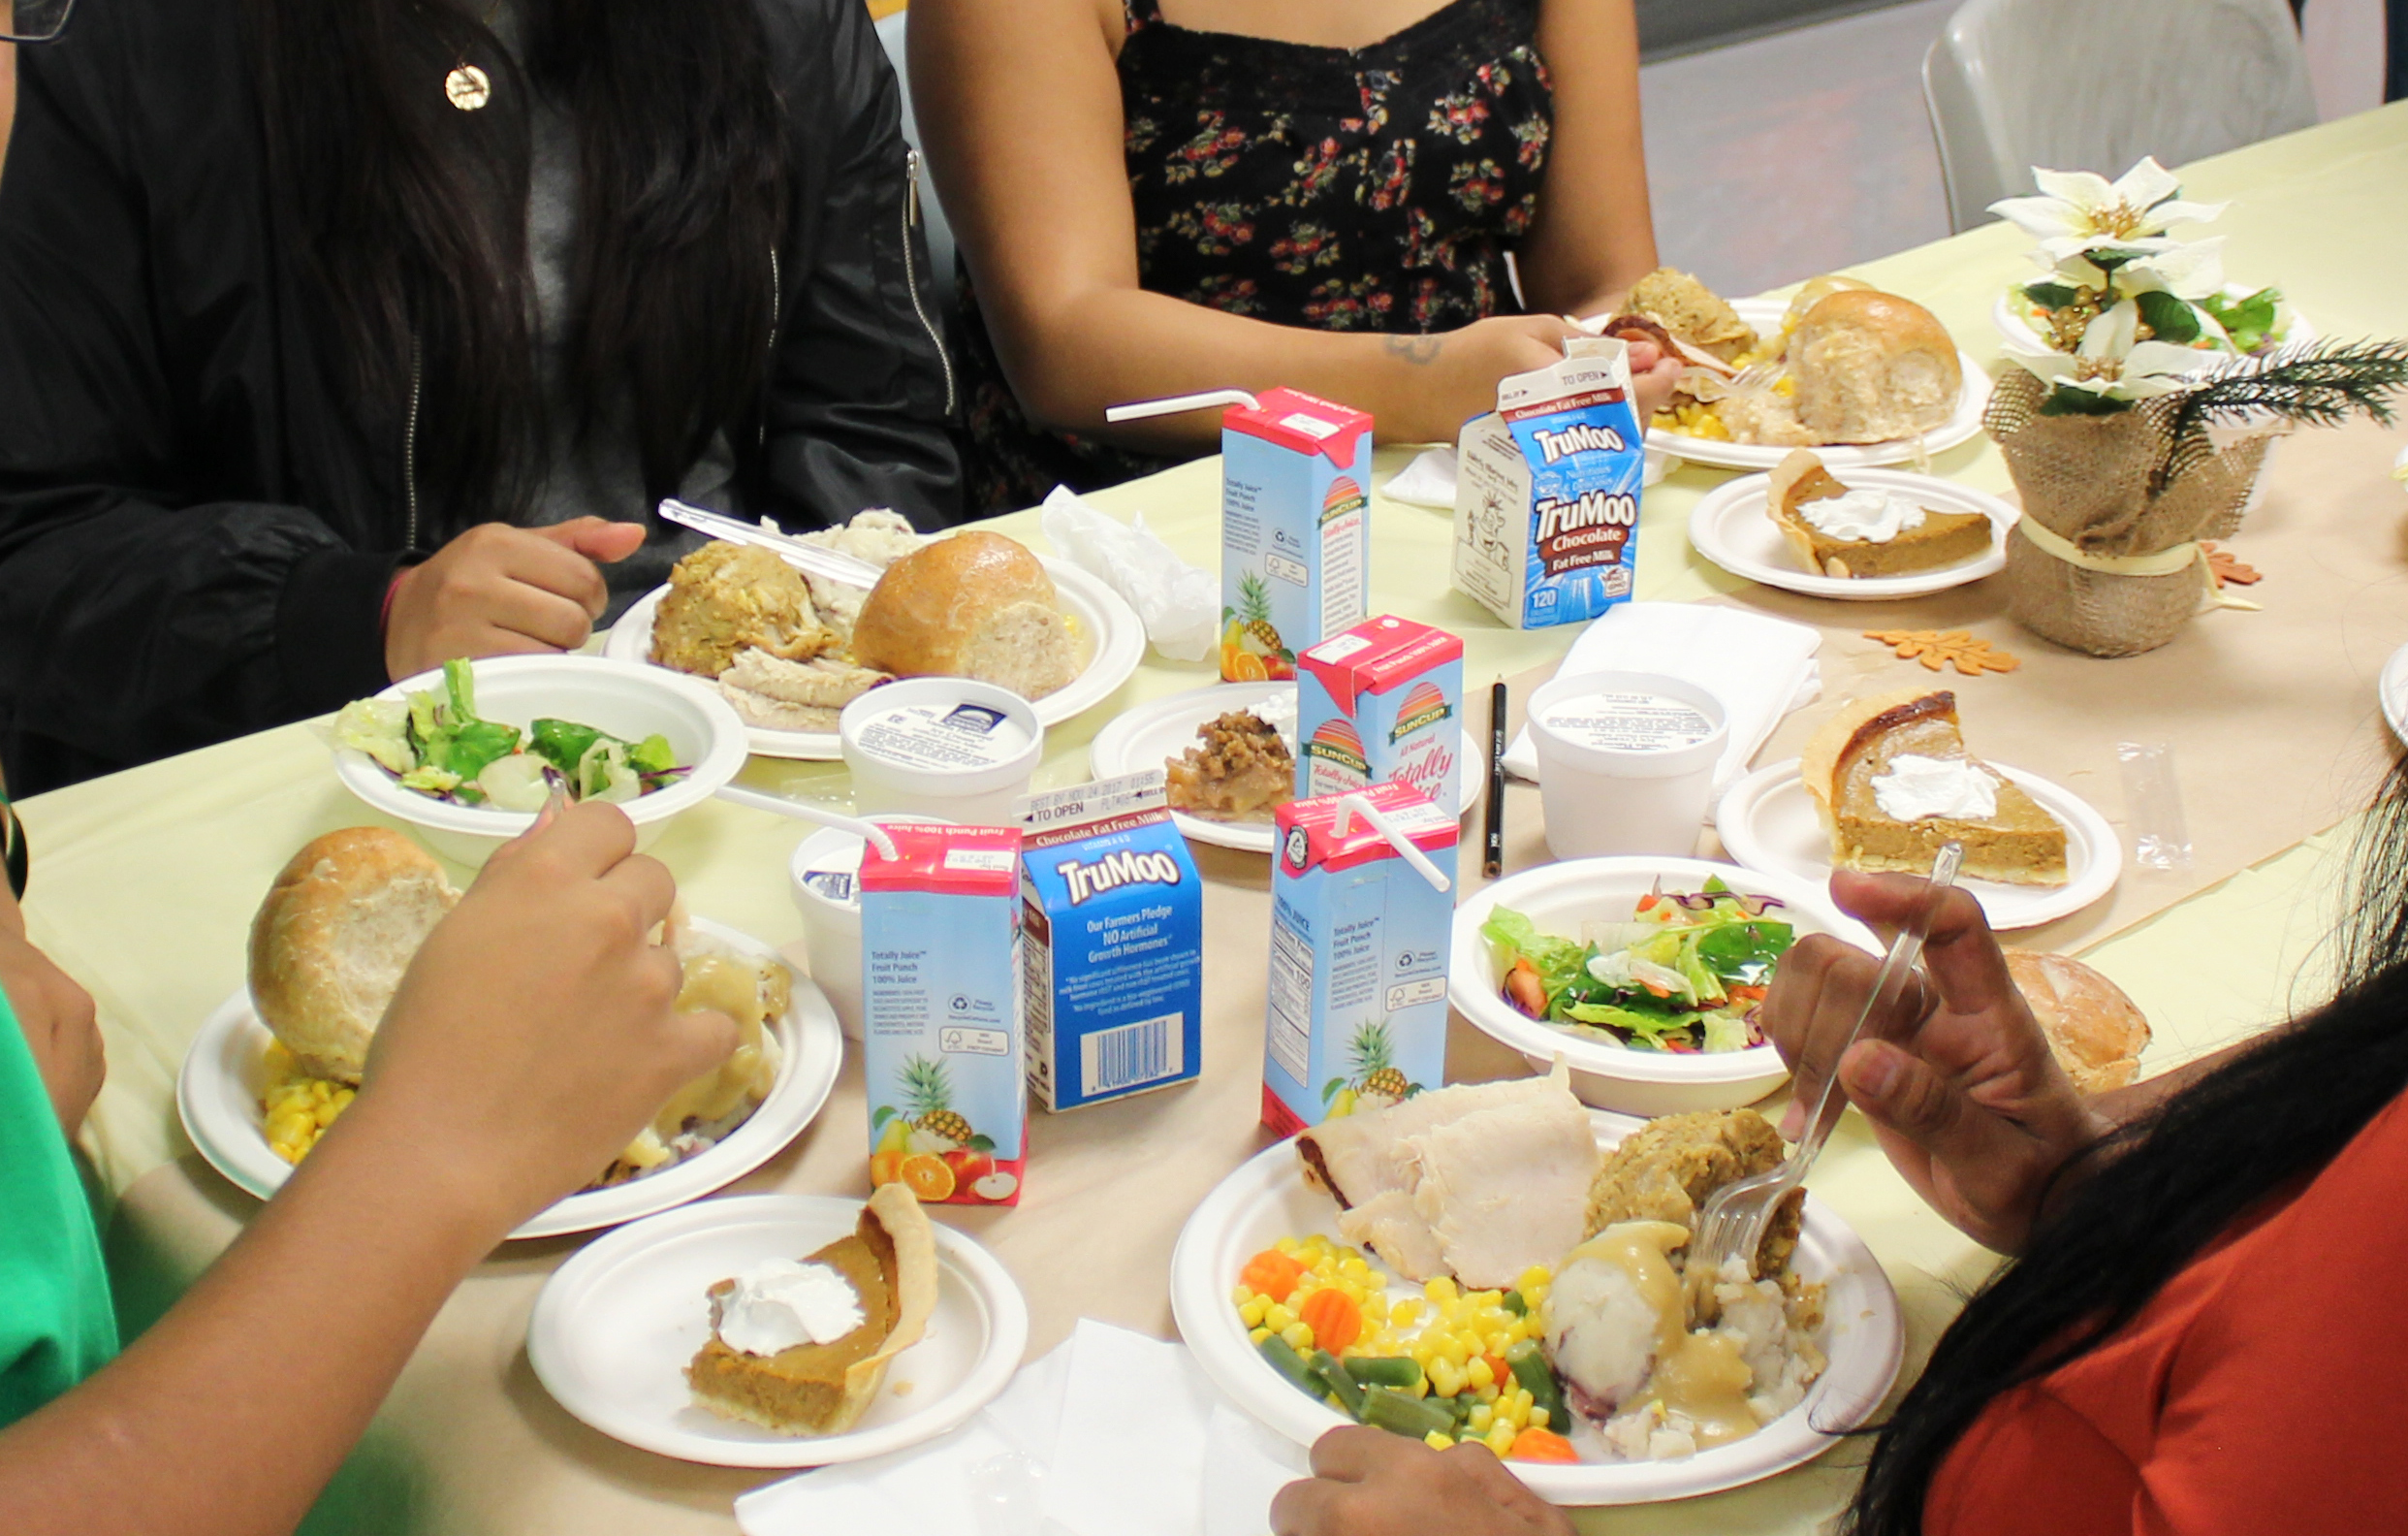 Young men in Probation's custody share a holiday meal with their family to keep them connected with their support system.